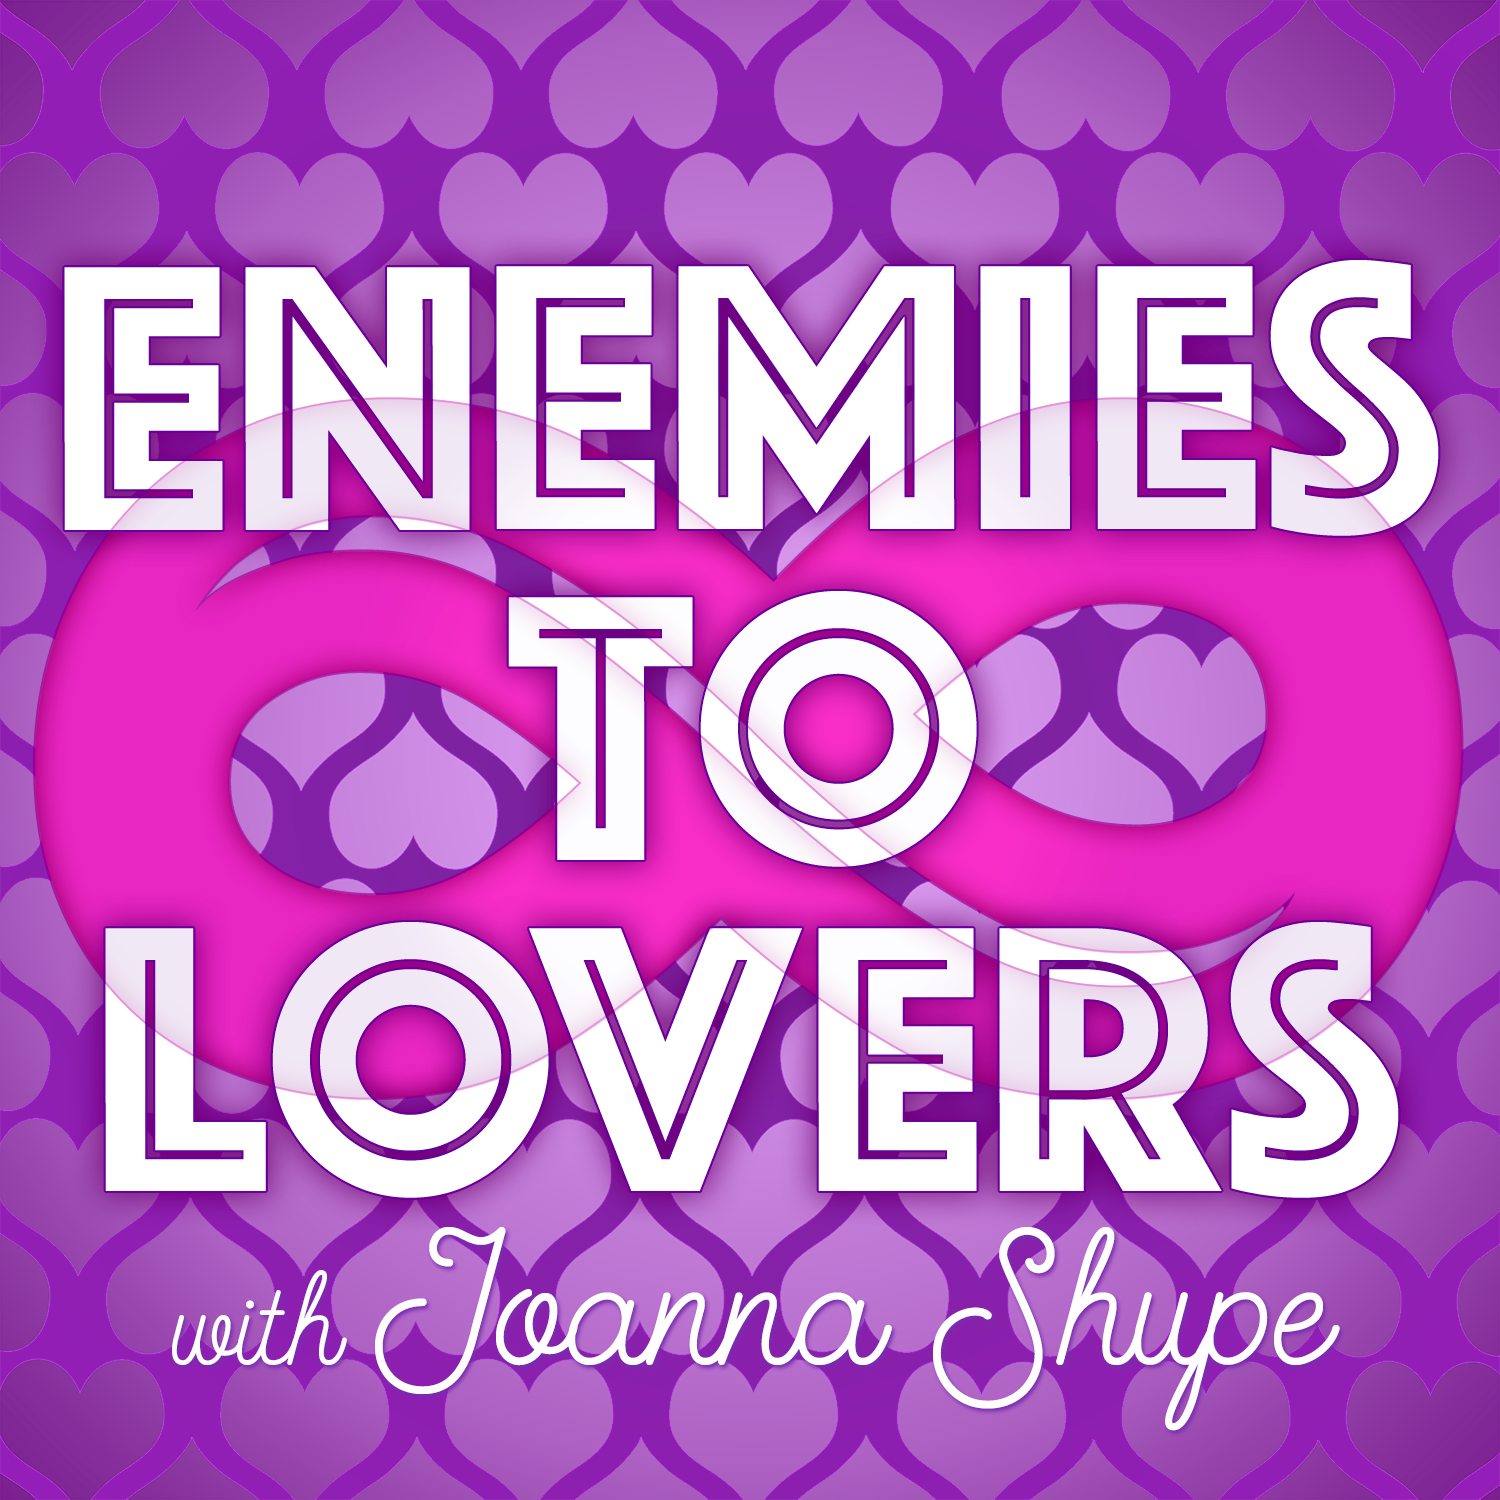 Enemies to Lovers romance novels with Joanna Shupe